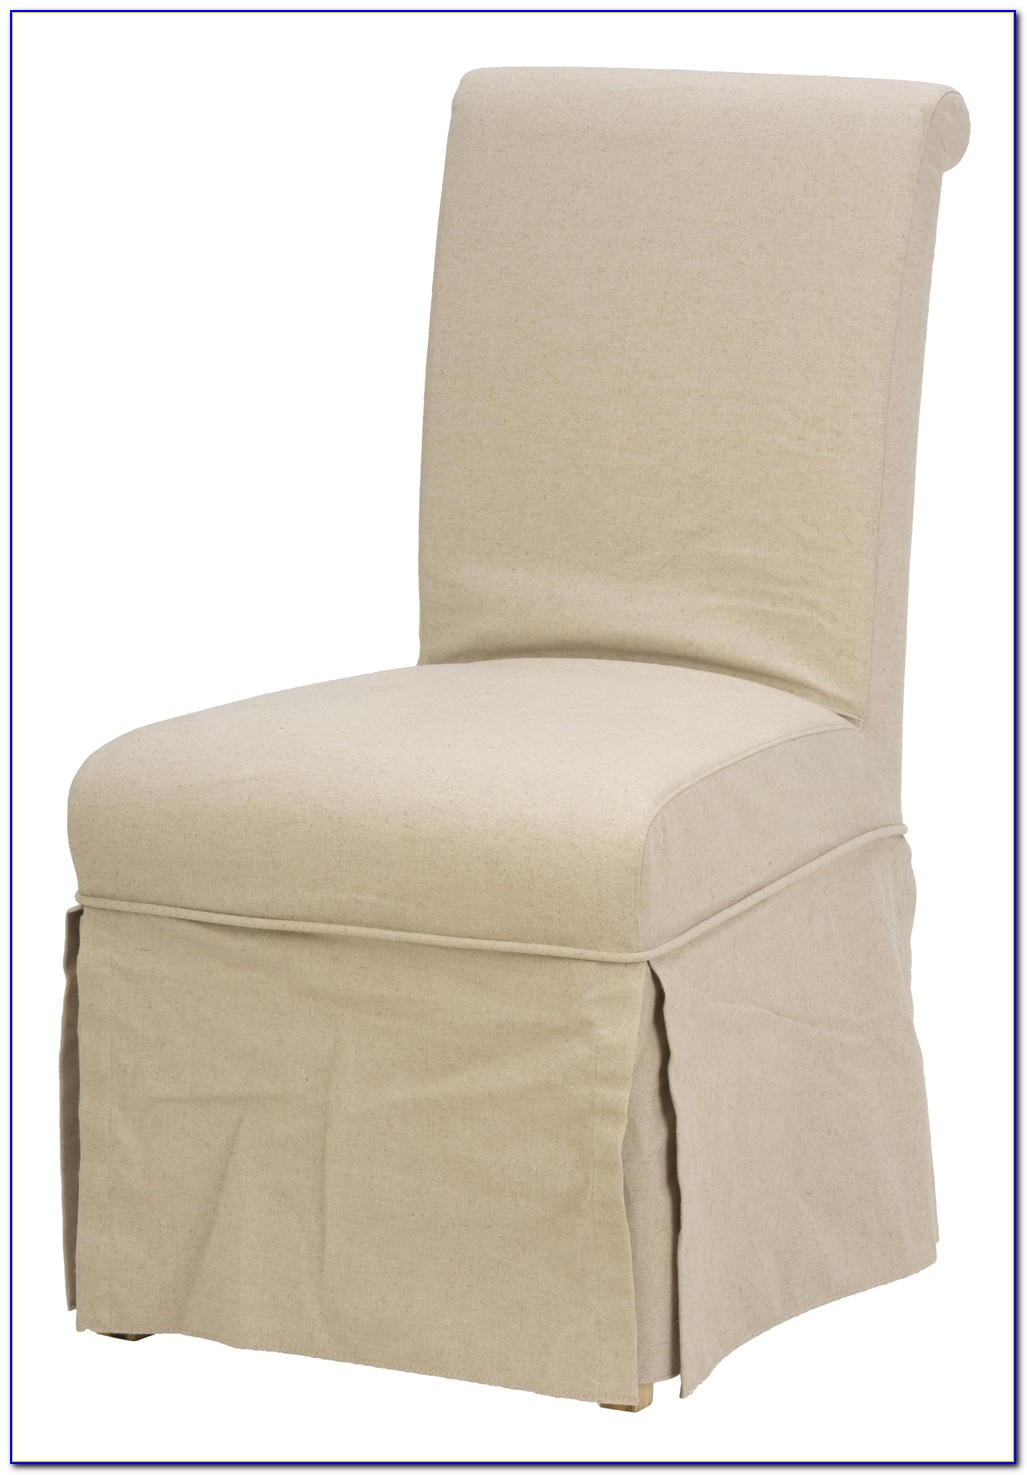 Parsons Chair Slipcovers Amazon